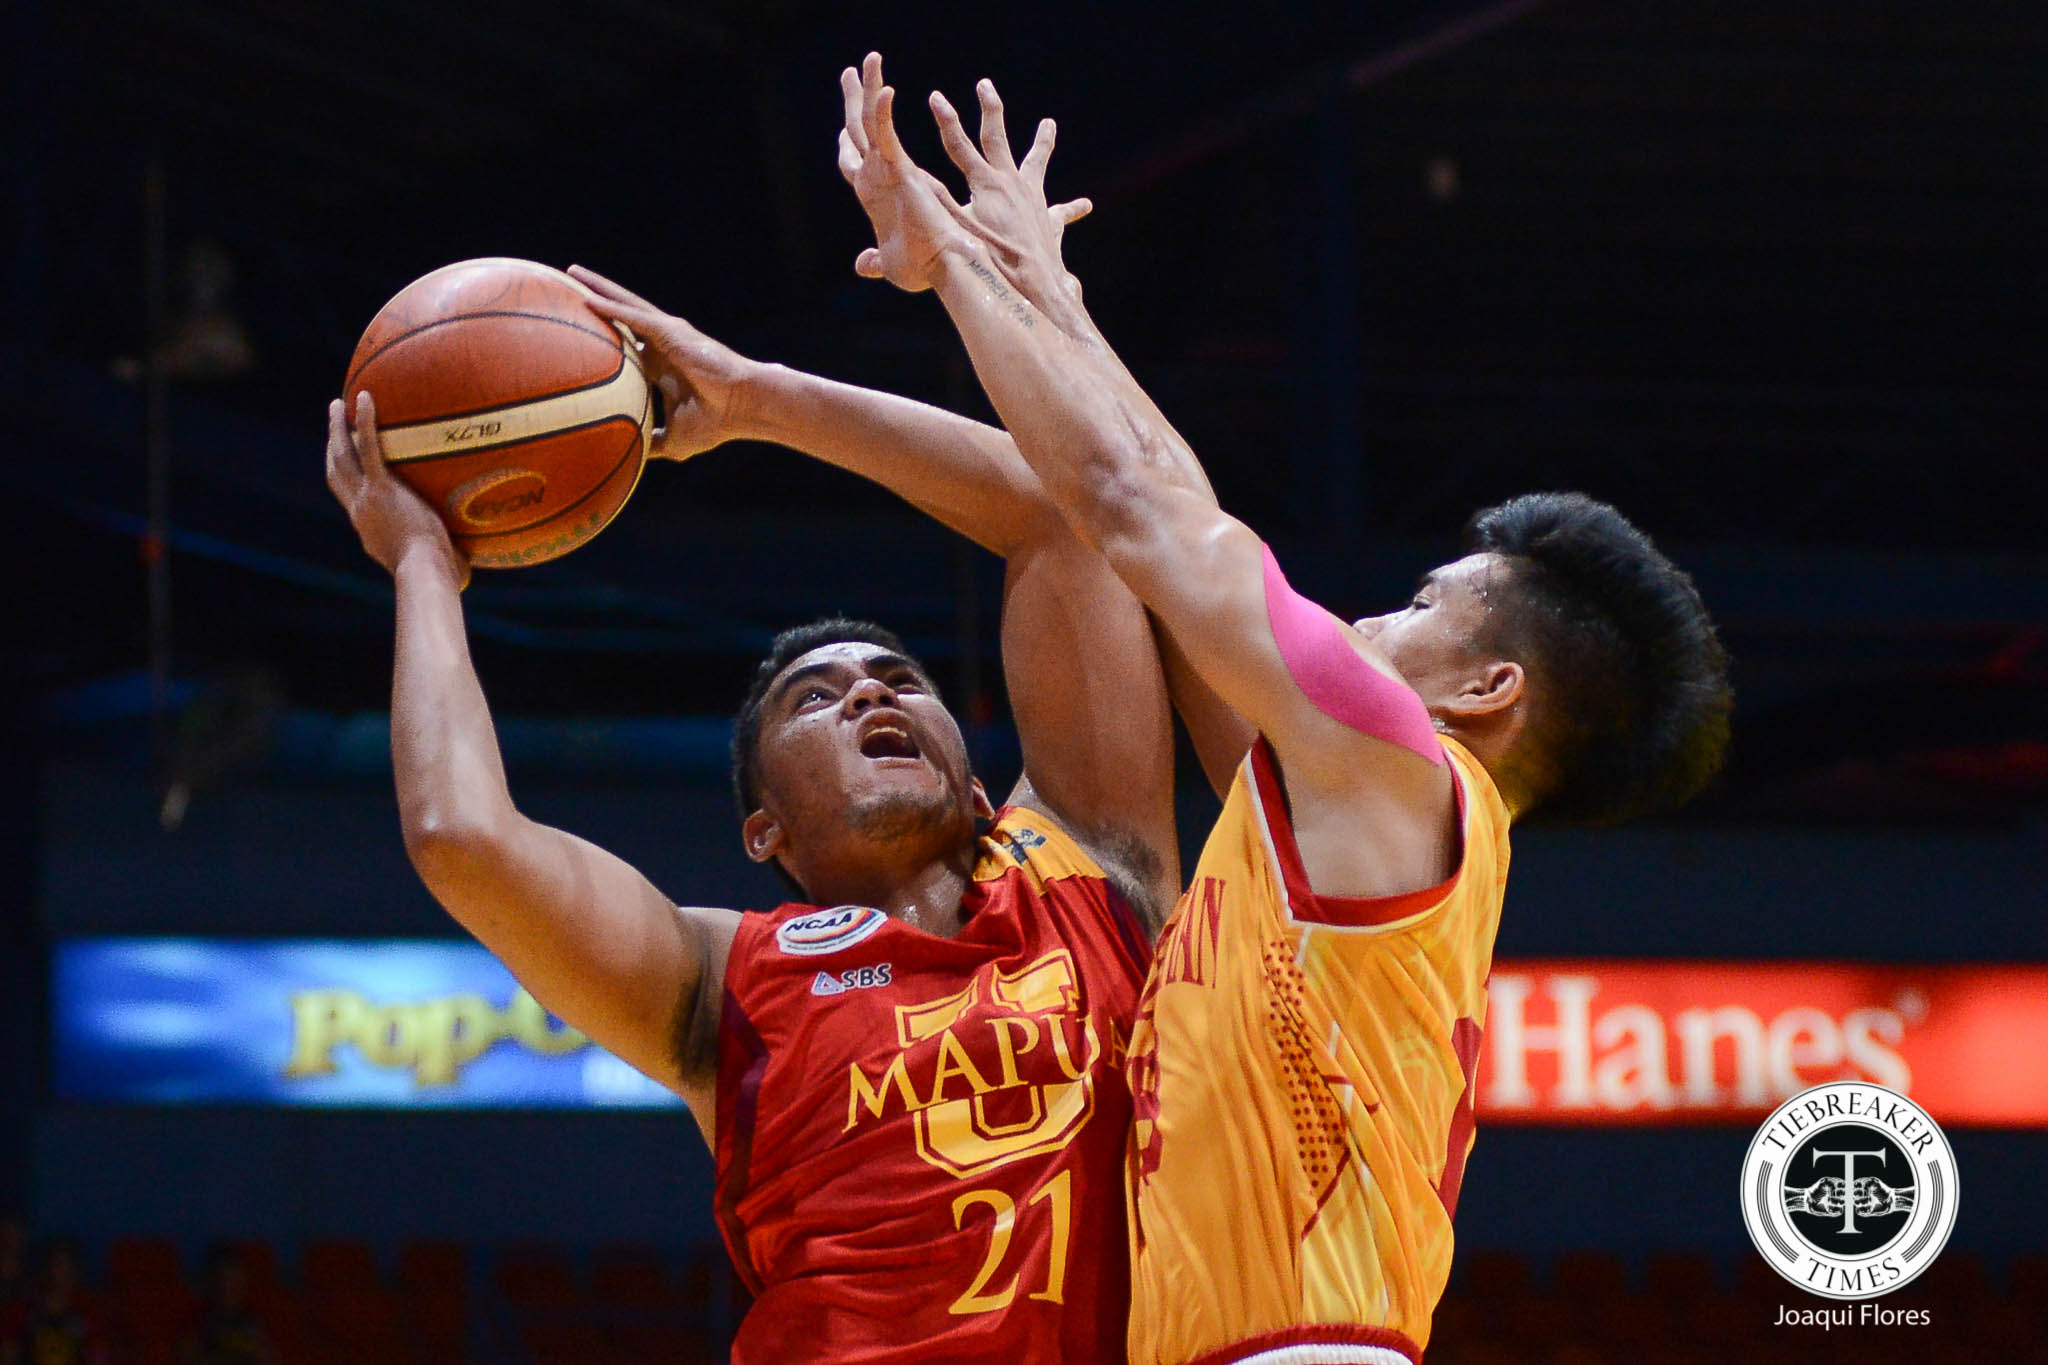 Philippine Sports News - Tiebreaker Times Down to just 11 Cardinals, Mapua aces Andrew Estrella, Leo Gabo suffer injuries Basketball MIT NCAA News  NCAA Season 93 Seniors Basketball NCAA Season 93 Mapua Seniors Basketball Leo Gabo Atoy Co Andrew Estrella